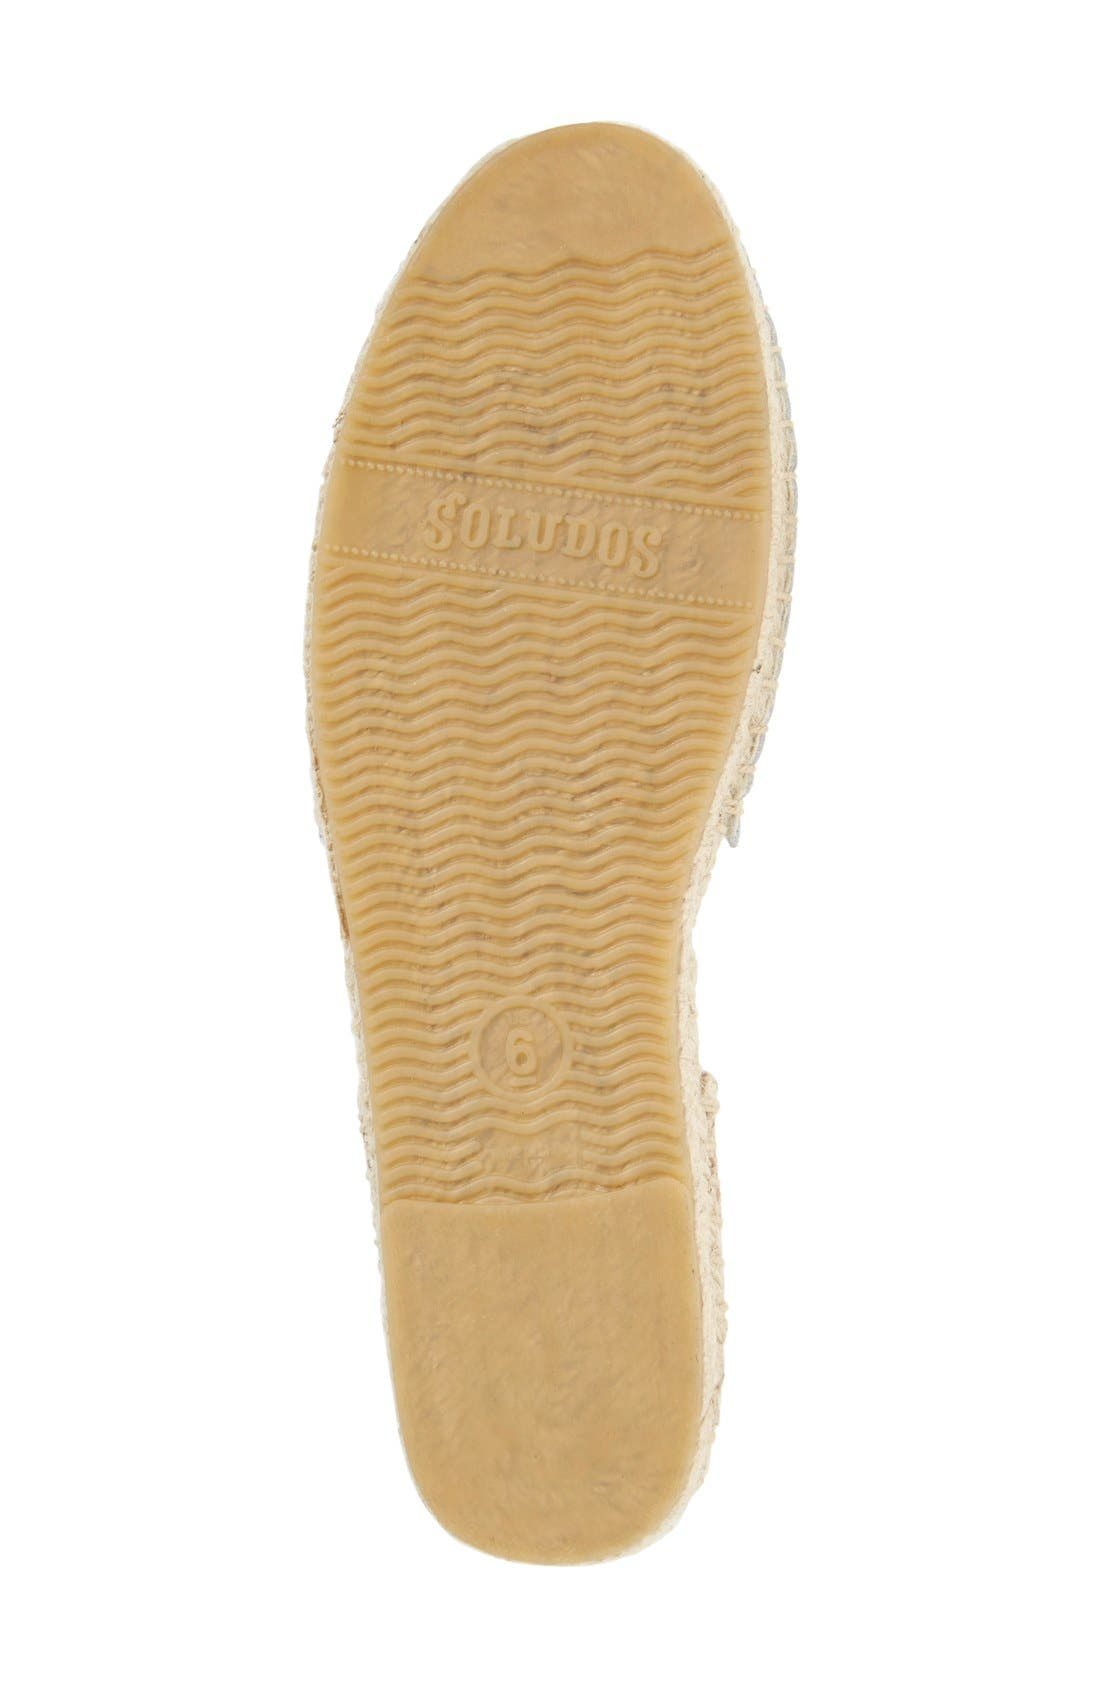 Espadrille Sandal,                             Alternate thumbnail 4, color,                             White